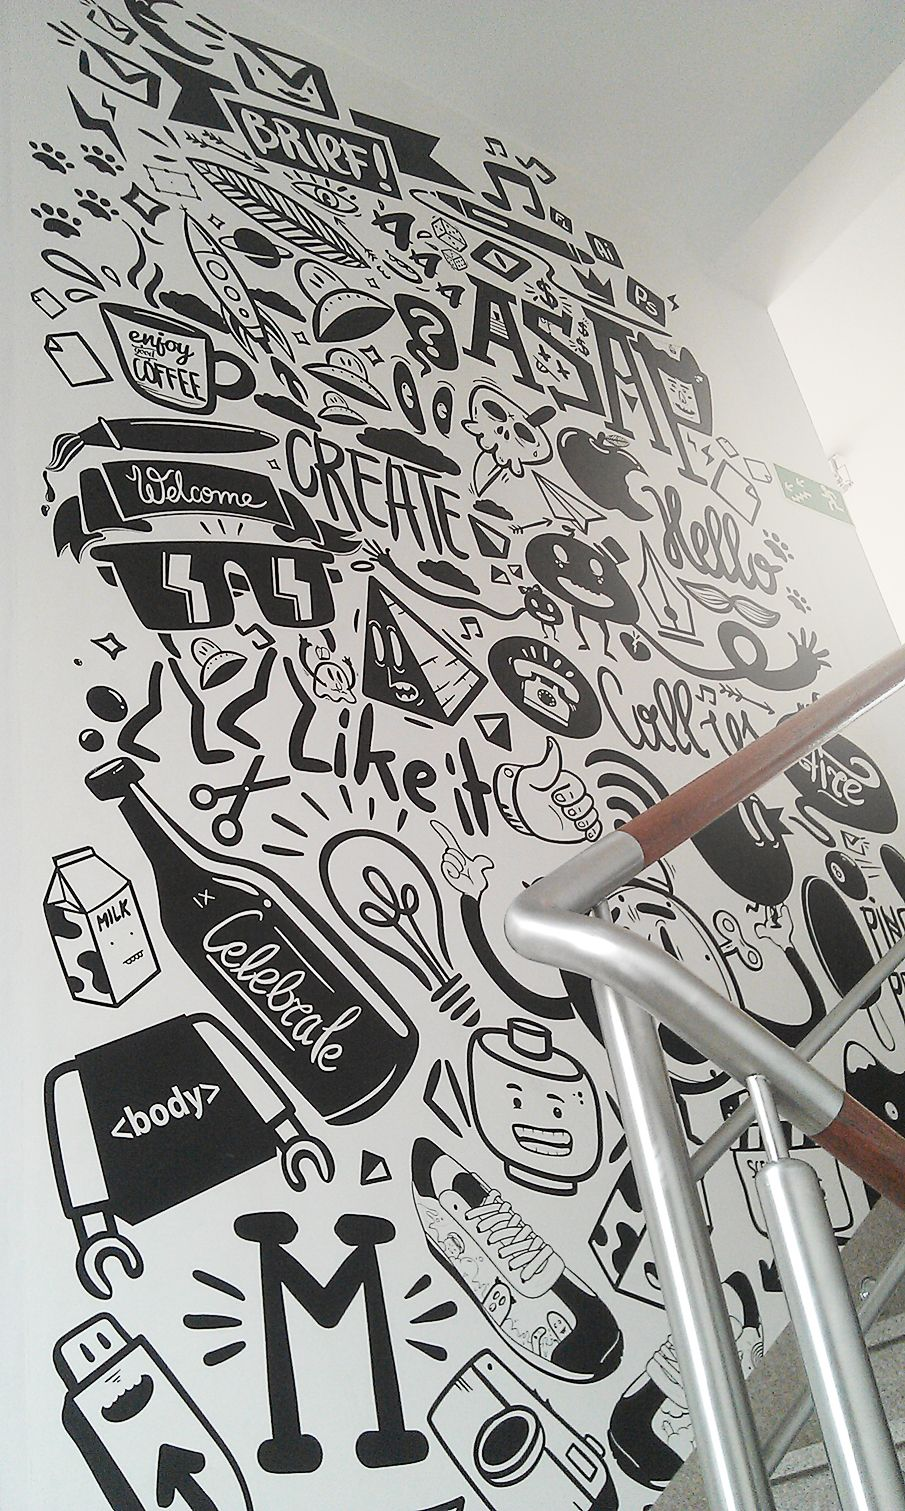 Agency life mural peterjaycob wall murals illustrations and walls agency life mural peterjaycob amipublicfo Choice Image